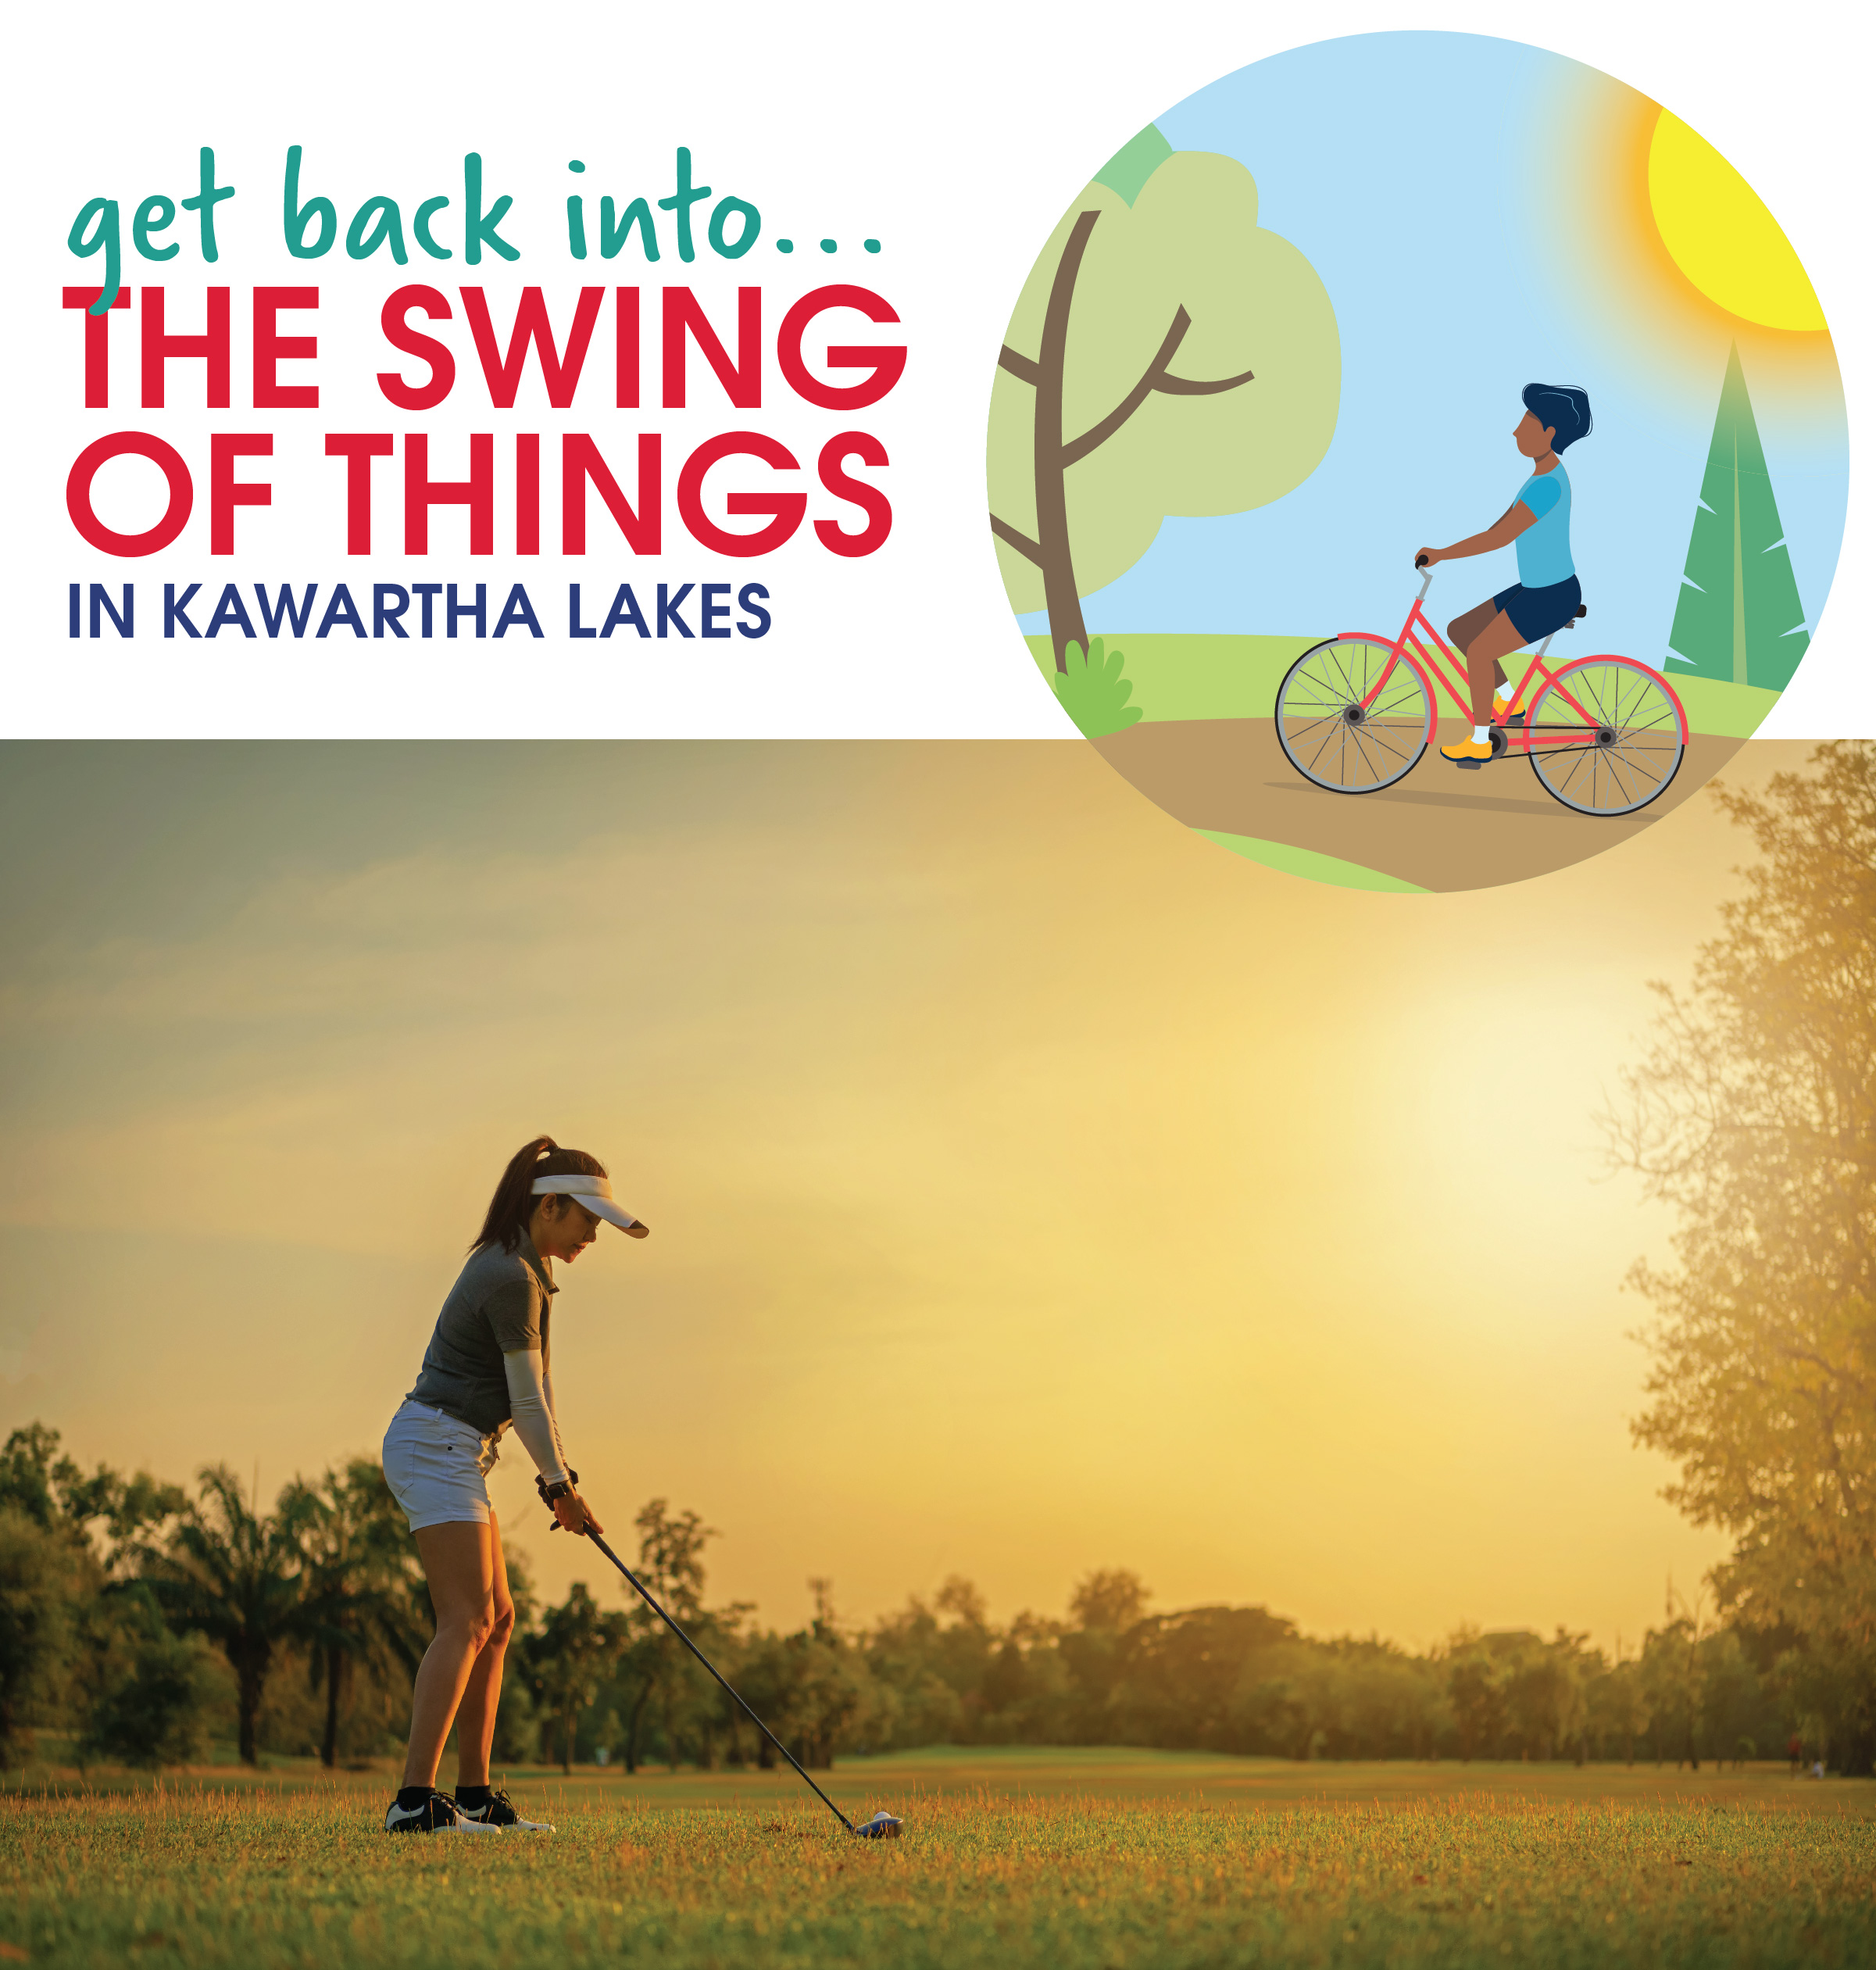 Get back into the swing of things in Kawartha Lakes